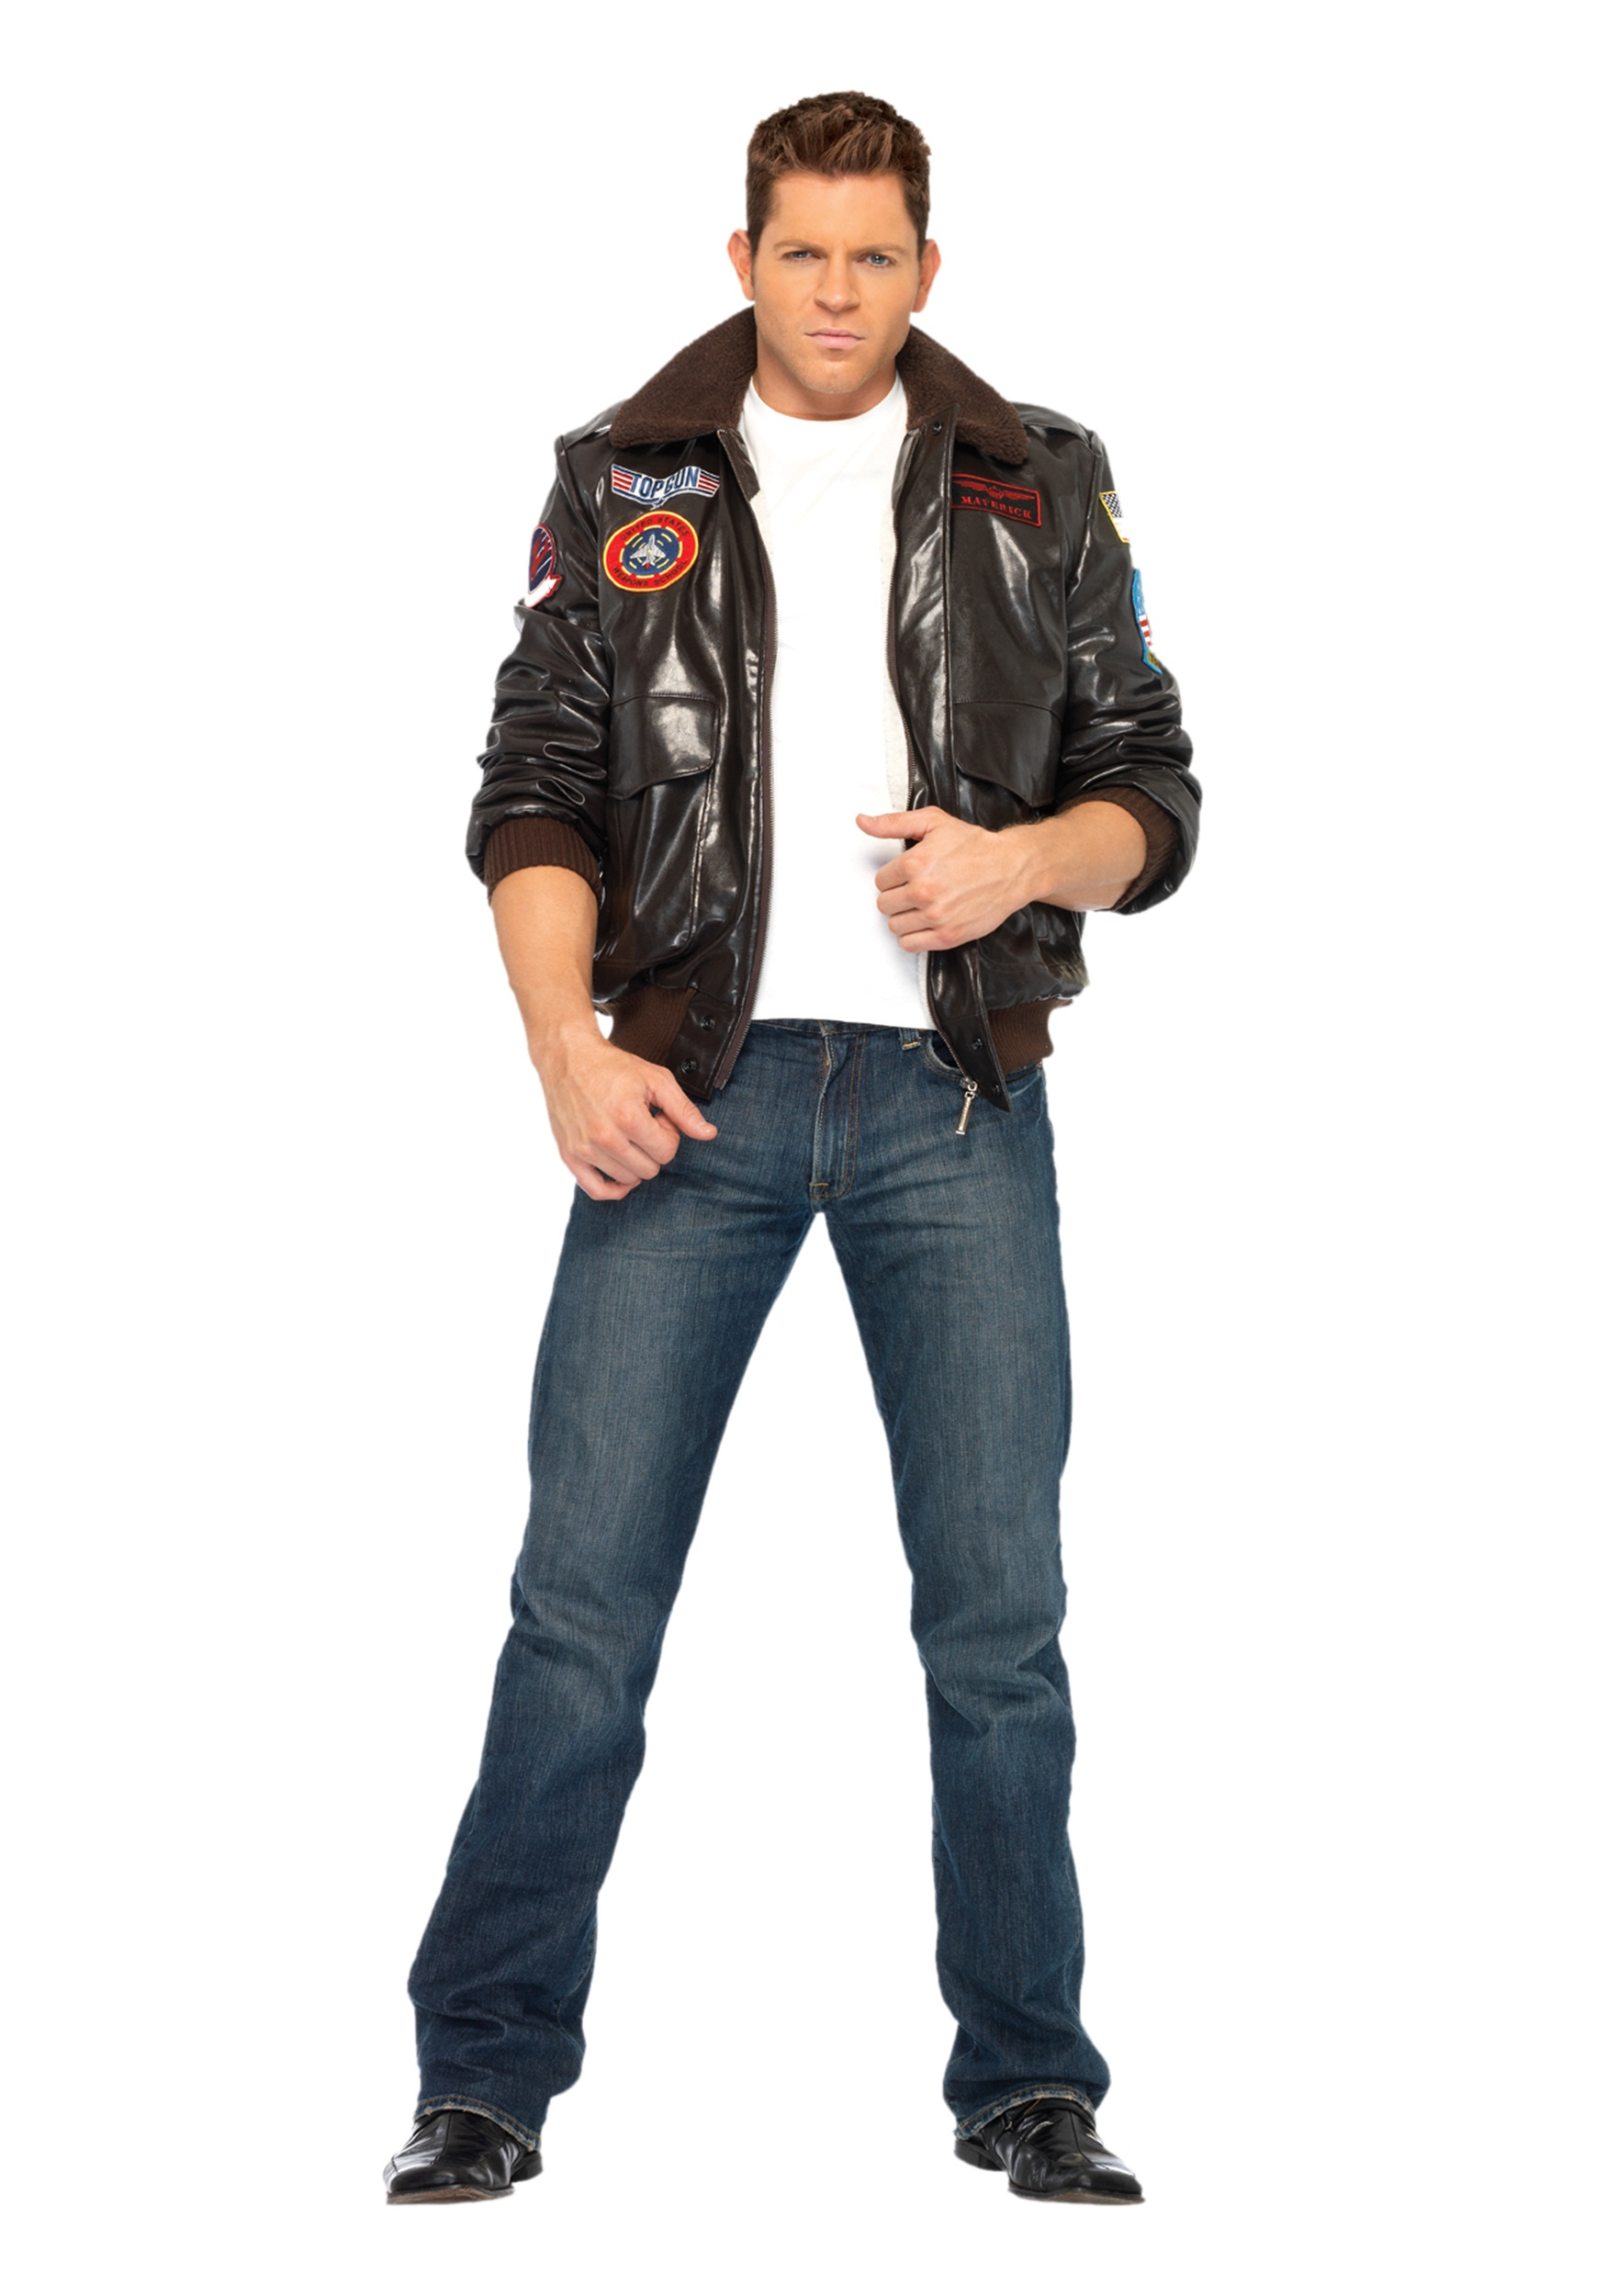 Mens Top Gun Bomber Jacket new image  sc 1 st  Halloween Costumes & Top Gun Costumes u0026 Flight Suits - HalloweenCostumes.com